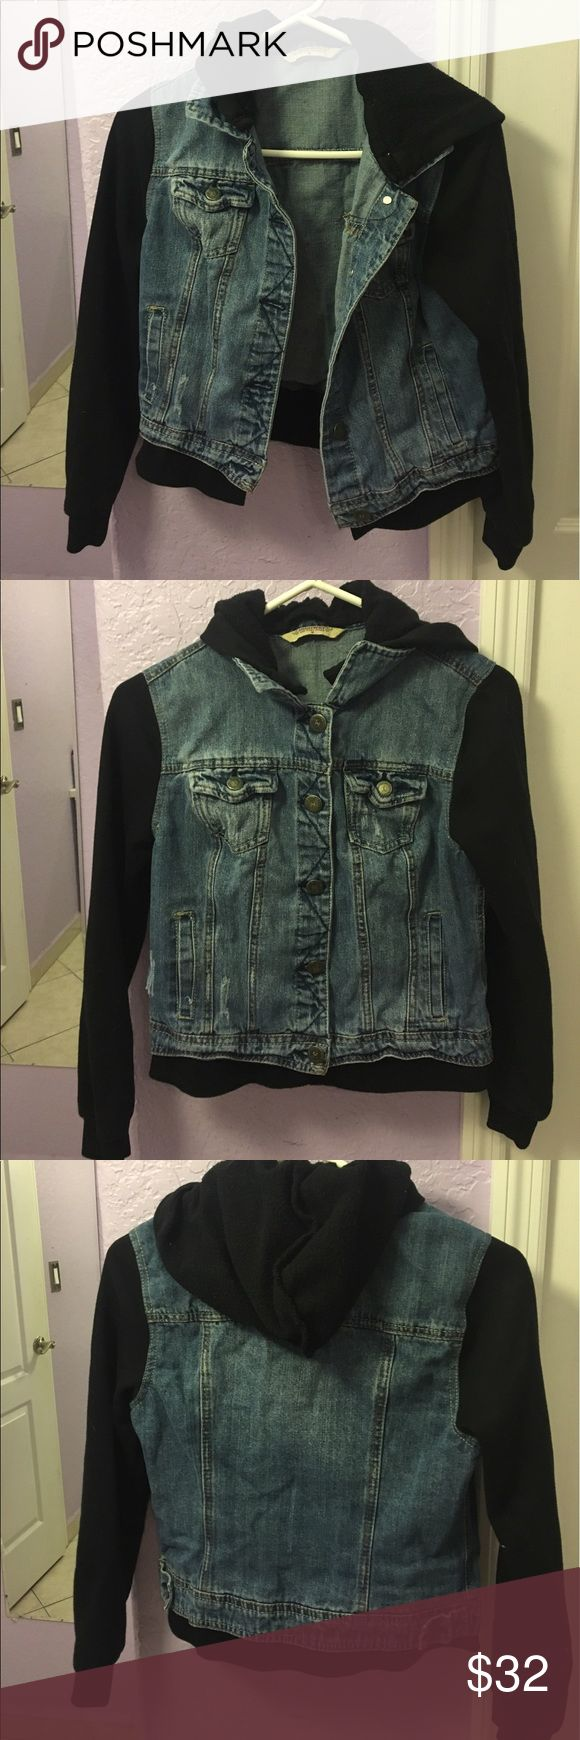 Hooded jean jacket Hooded jean jacket. Very warm and comfortable. Worn 3 times. Tilly's Jackets & Coats Jean Jackets